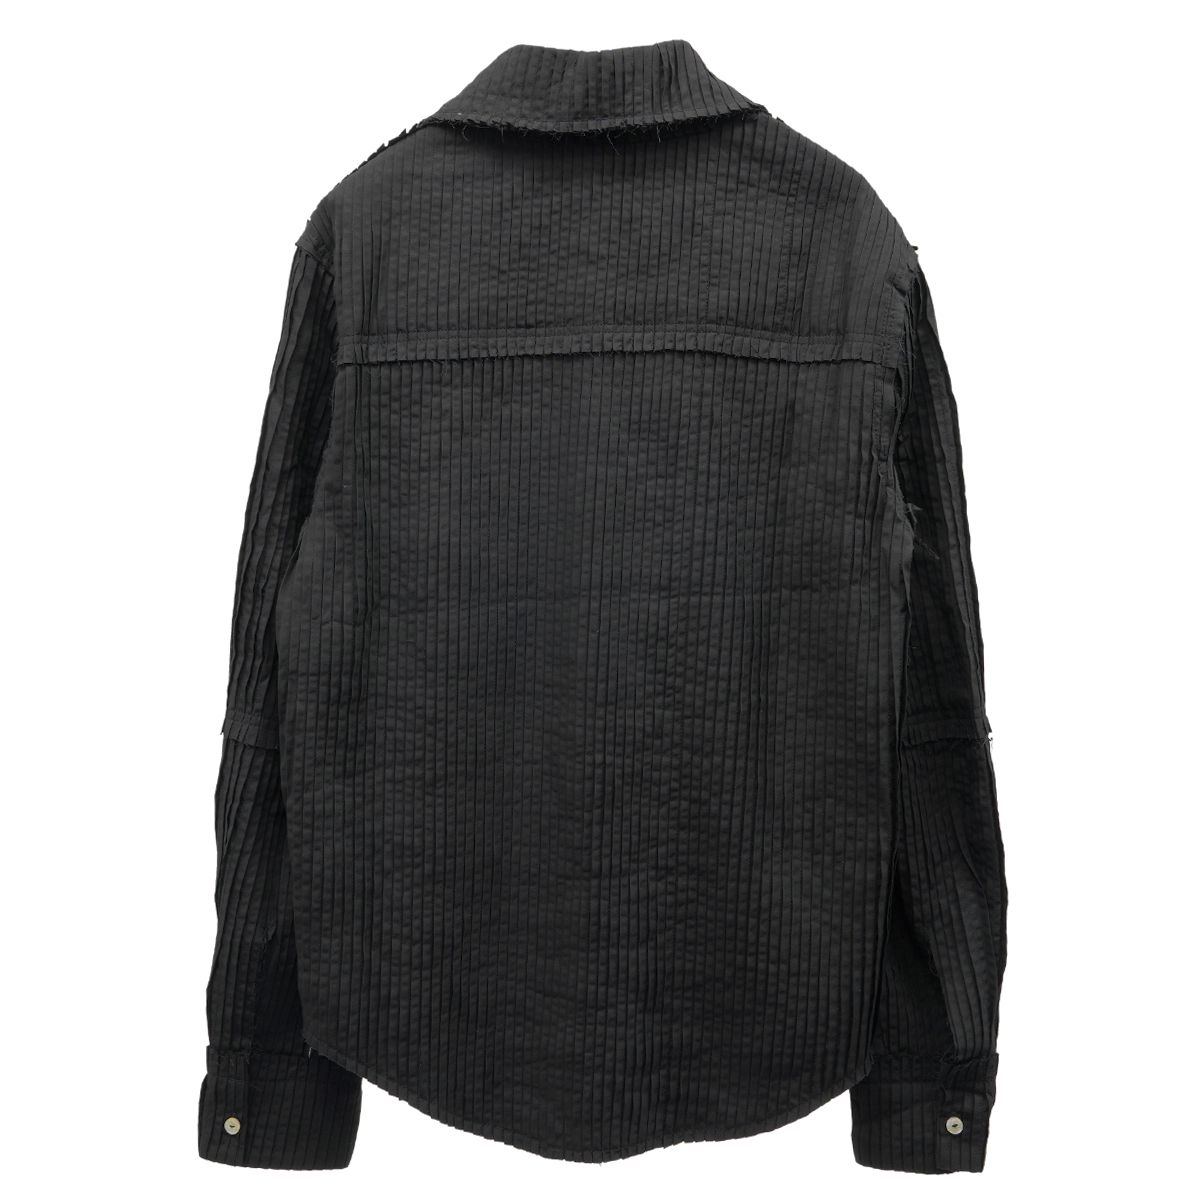 TELFAR PLEATED HIGH COLLAR DRESS SHIRT / 002 : BLACK